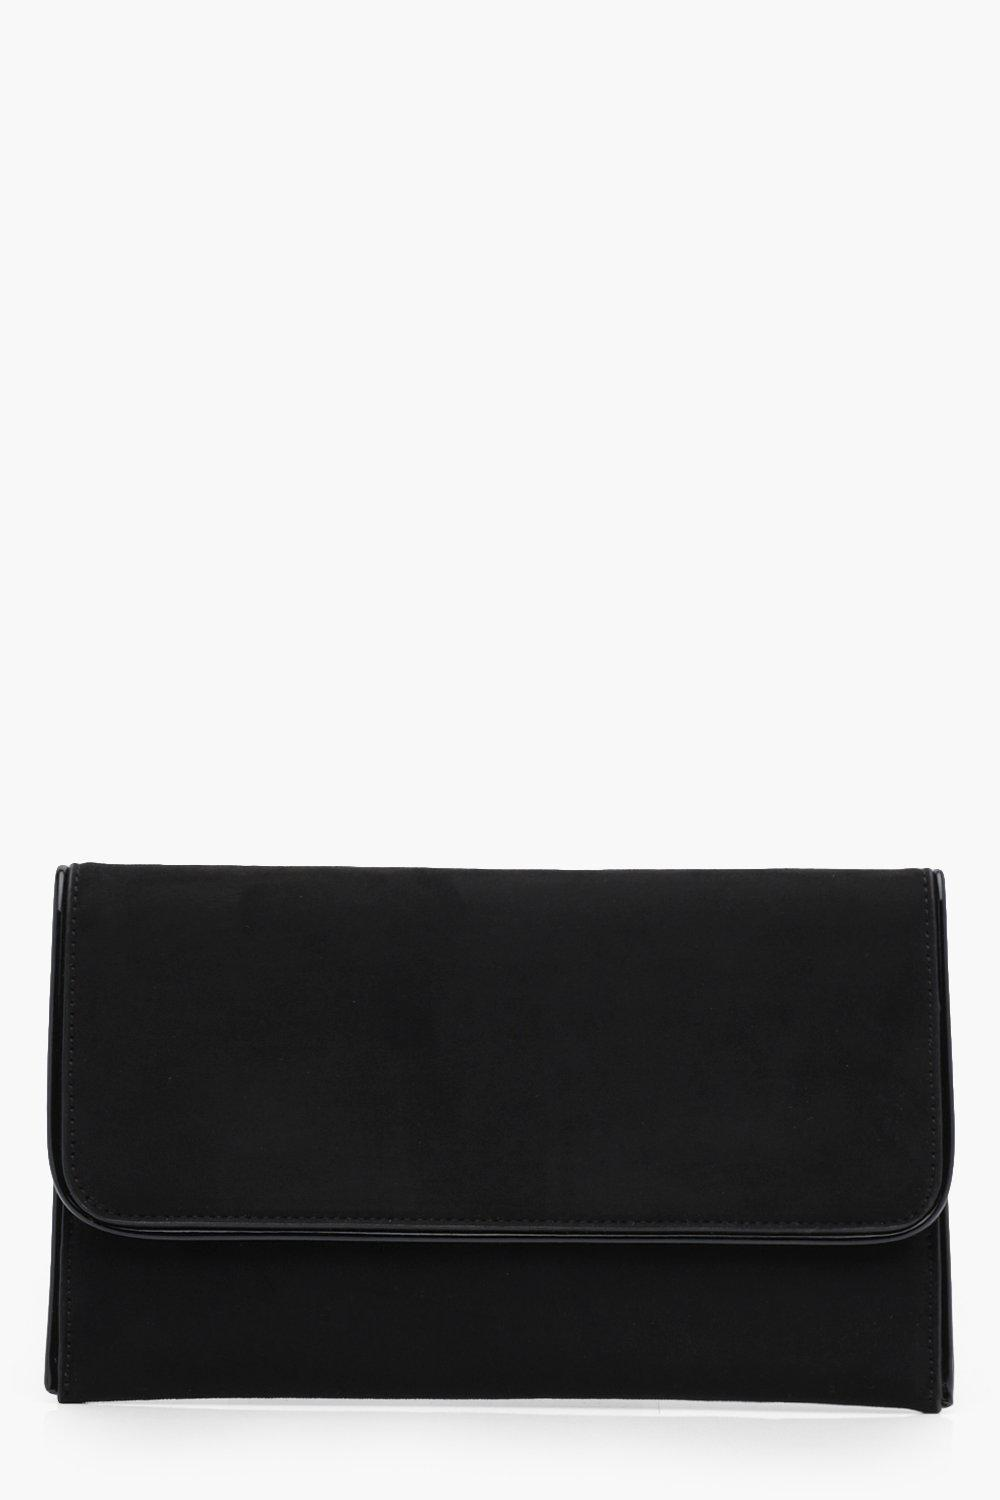 Piped Edge Suedette Clutch - black - Emma Piped Ed